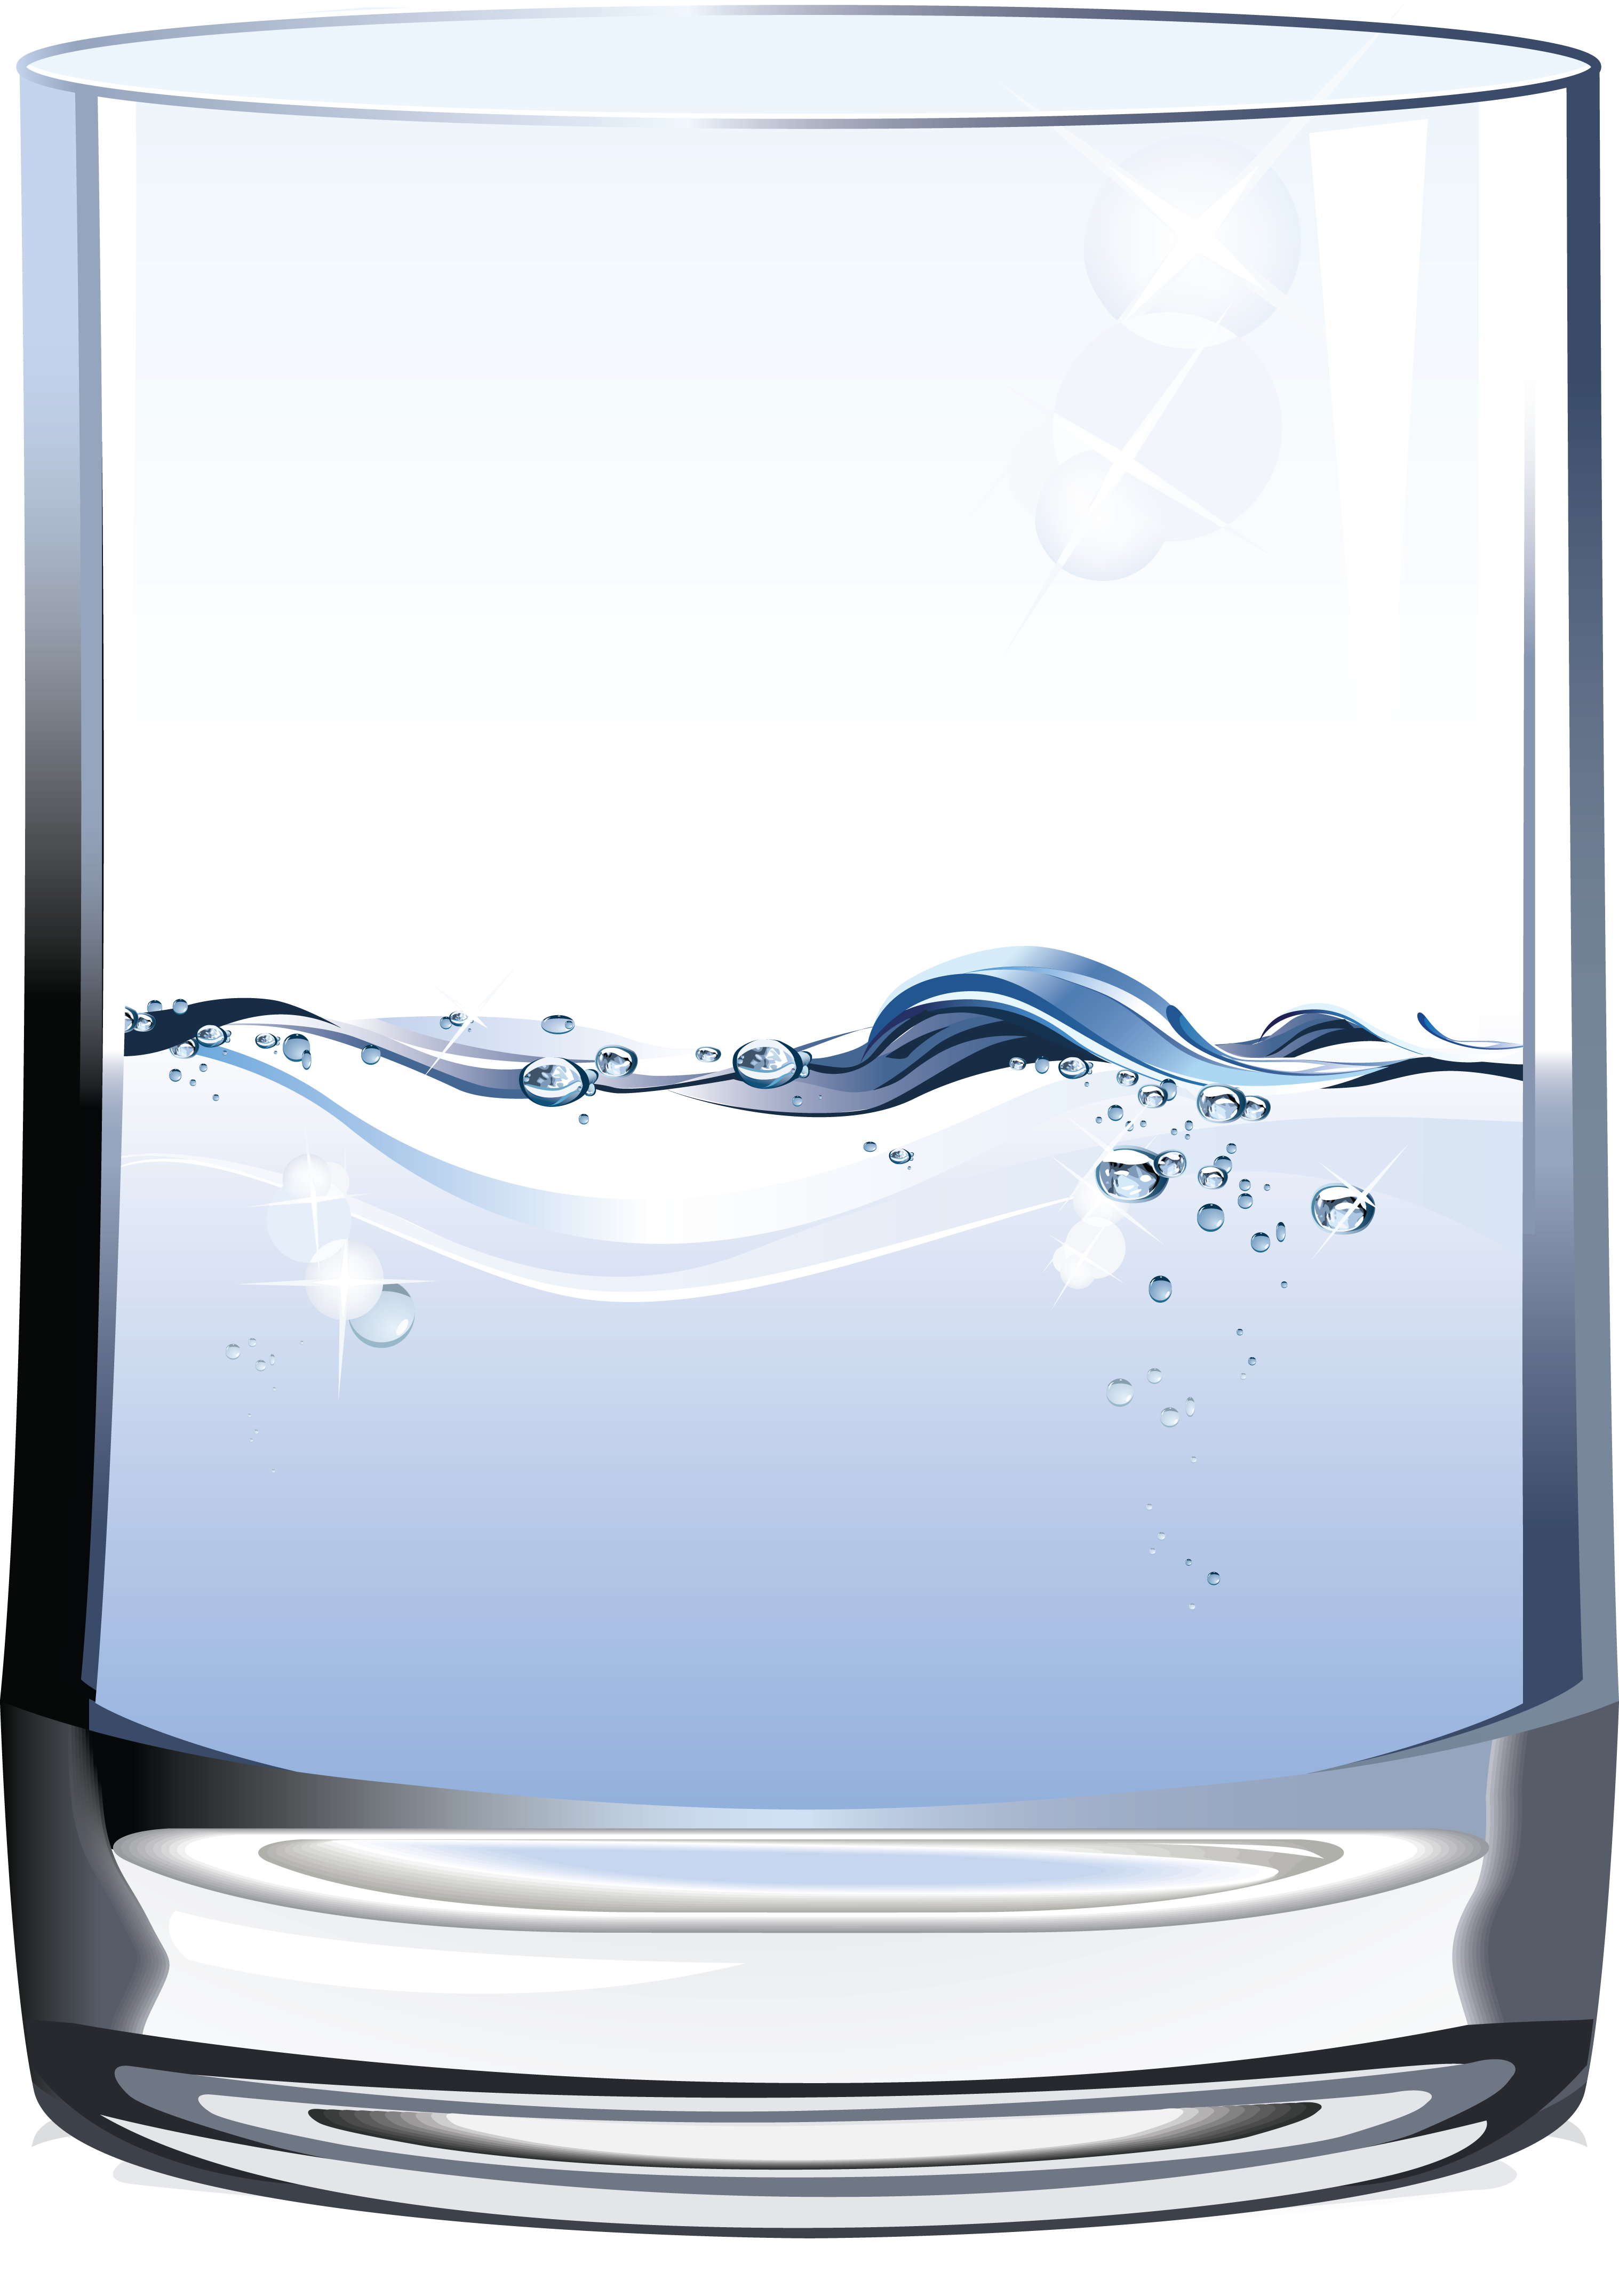 Now you can download Water Glass PNG